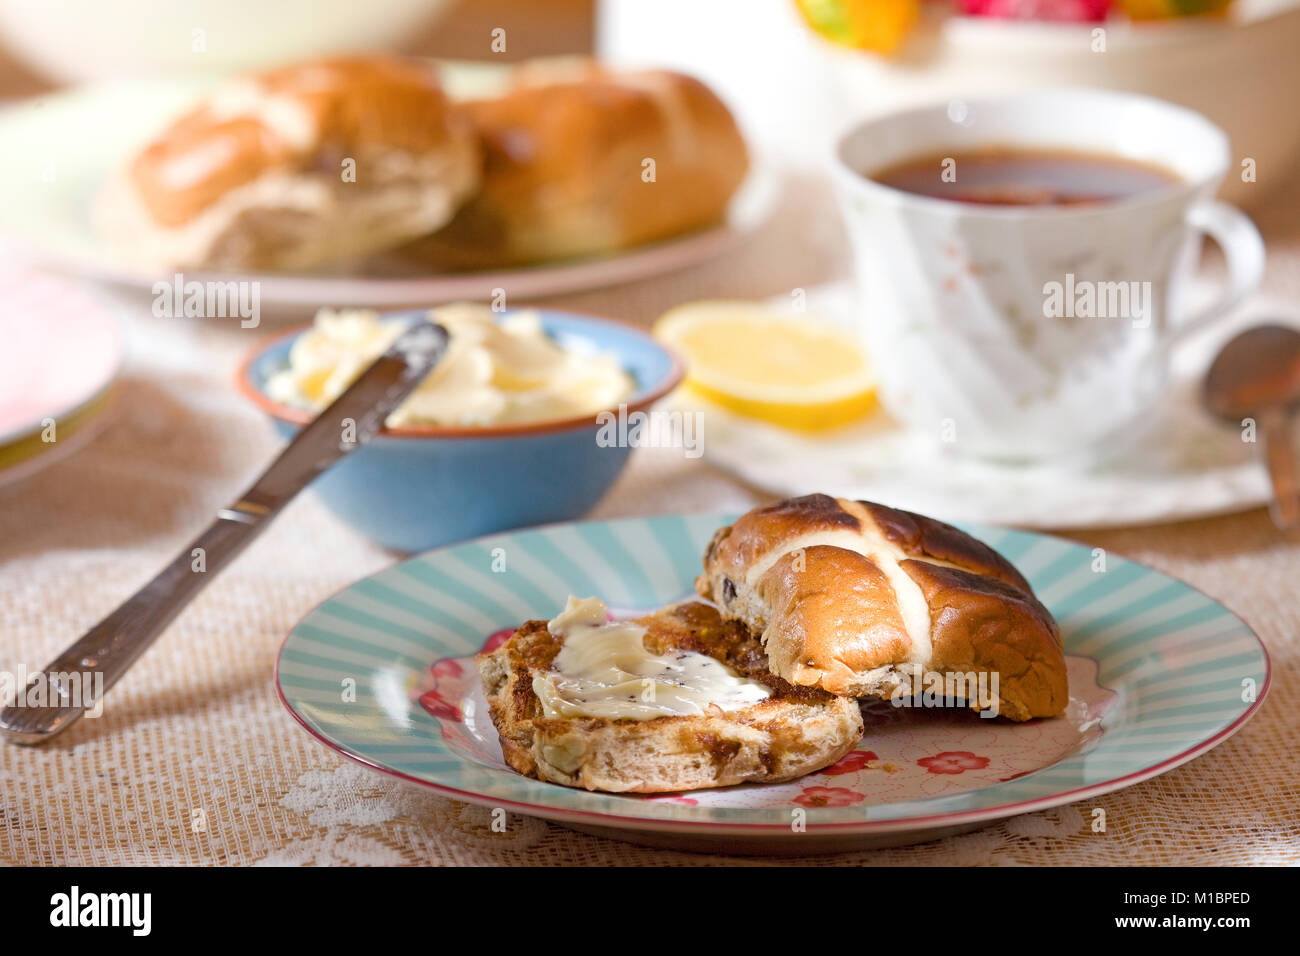 Hot cross buns with melted butter - Stock Image